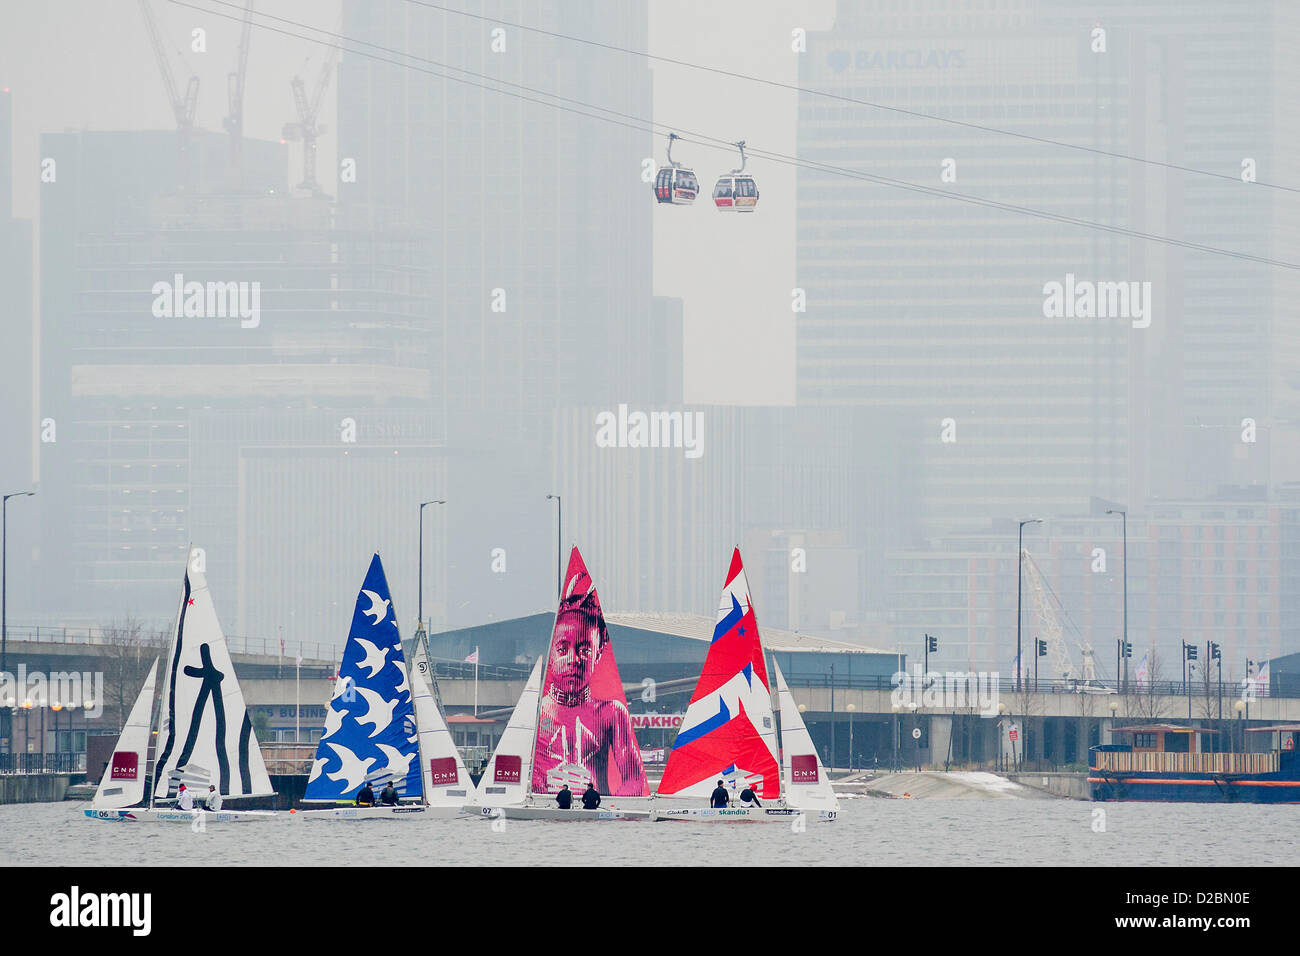 Star Class boats are raced by 20 Olympic and World champion sailors – including triple Olympic medalist Iain Percy, - Stock Image